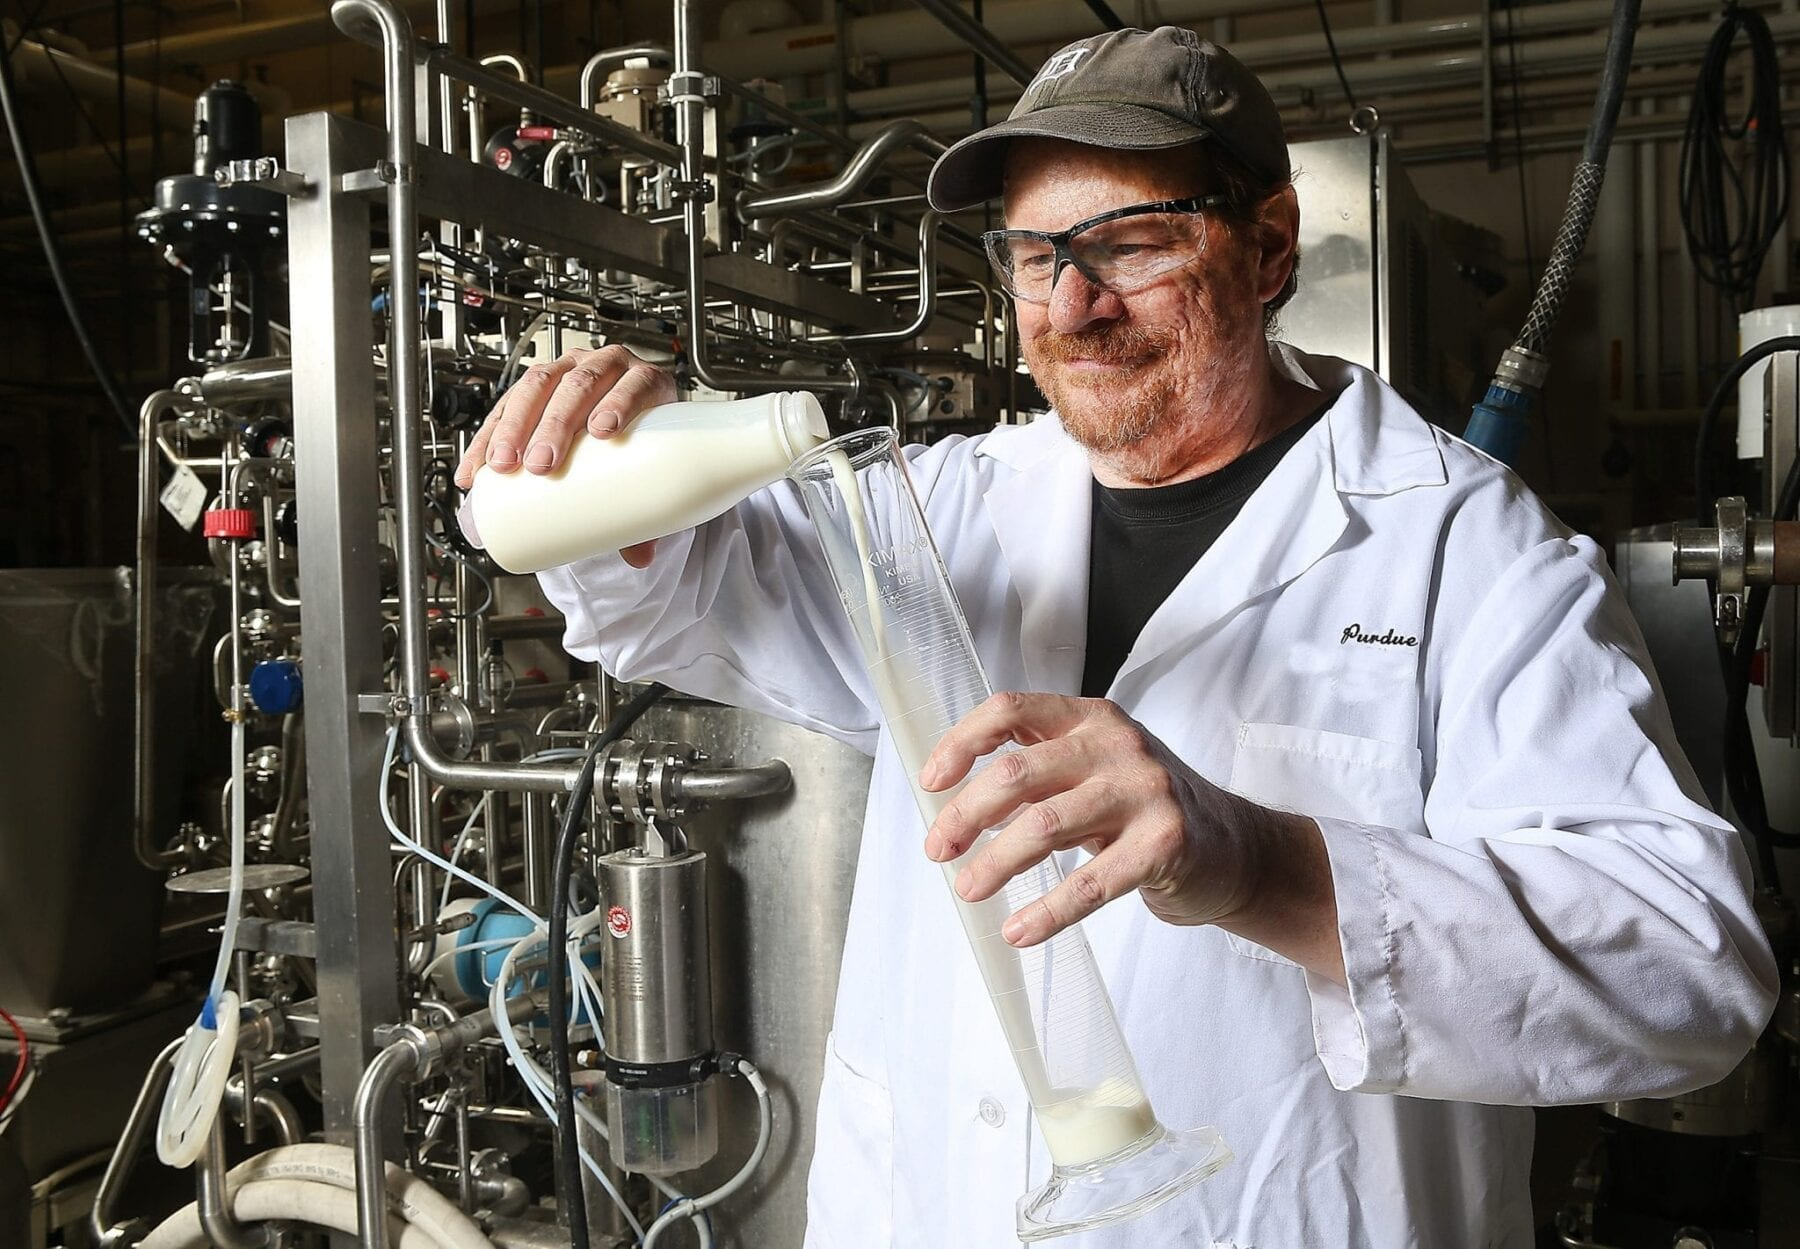 Rapid, low-temperature process adds weeks to milk's shelf life